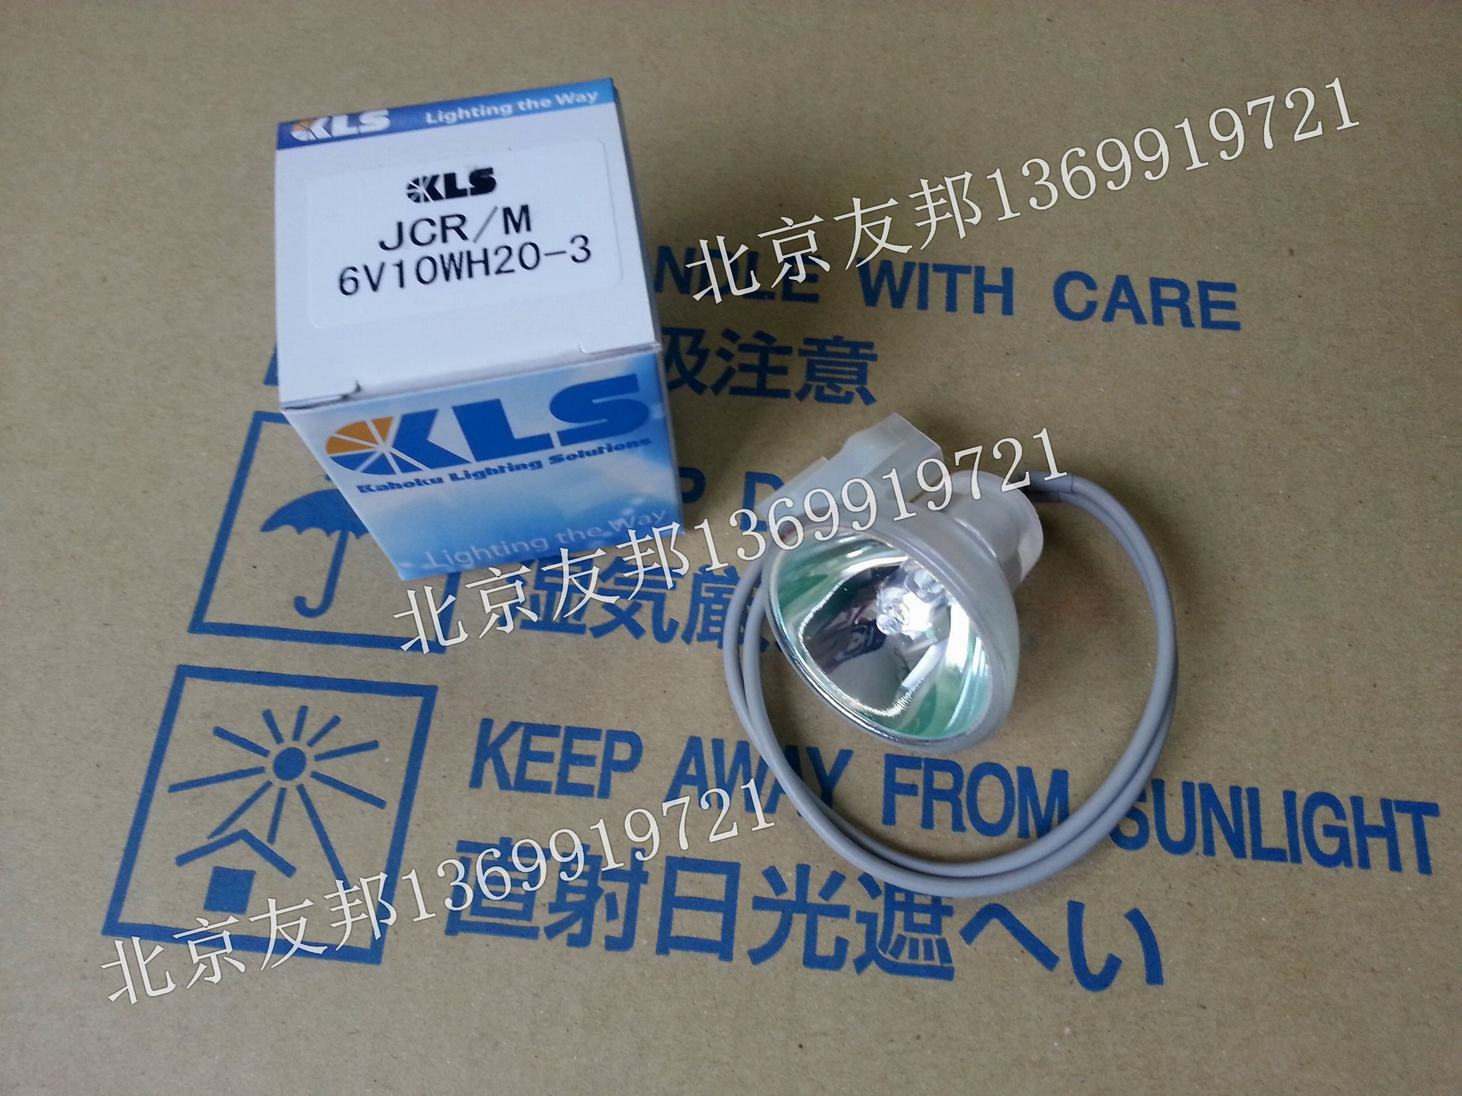 FOR Sysmex Sysmex CA1500CA6000CA7000 Replacement Light BulbFOR Sysmex Sysmex CA1500CA6000CA7000 Replacement Light Bulb